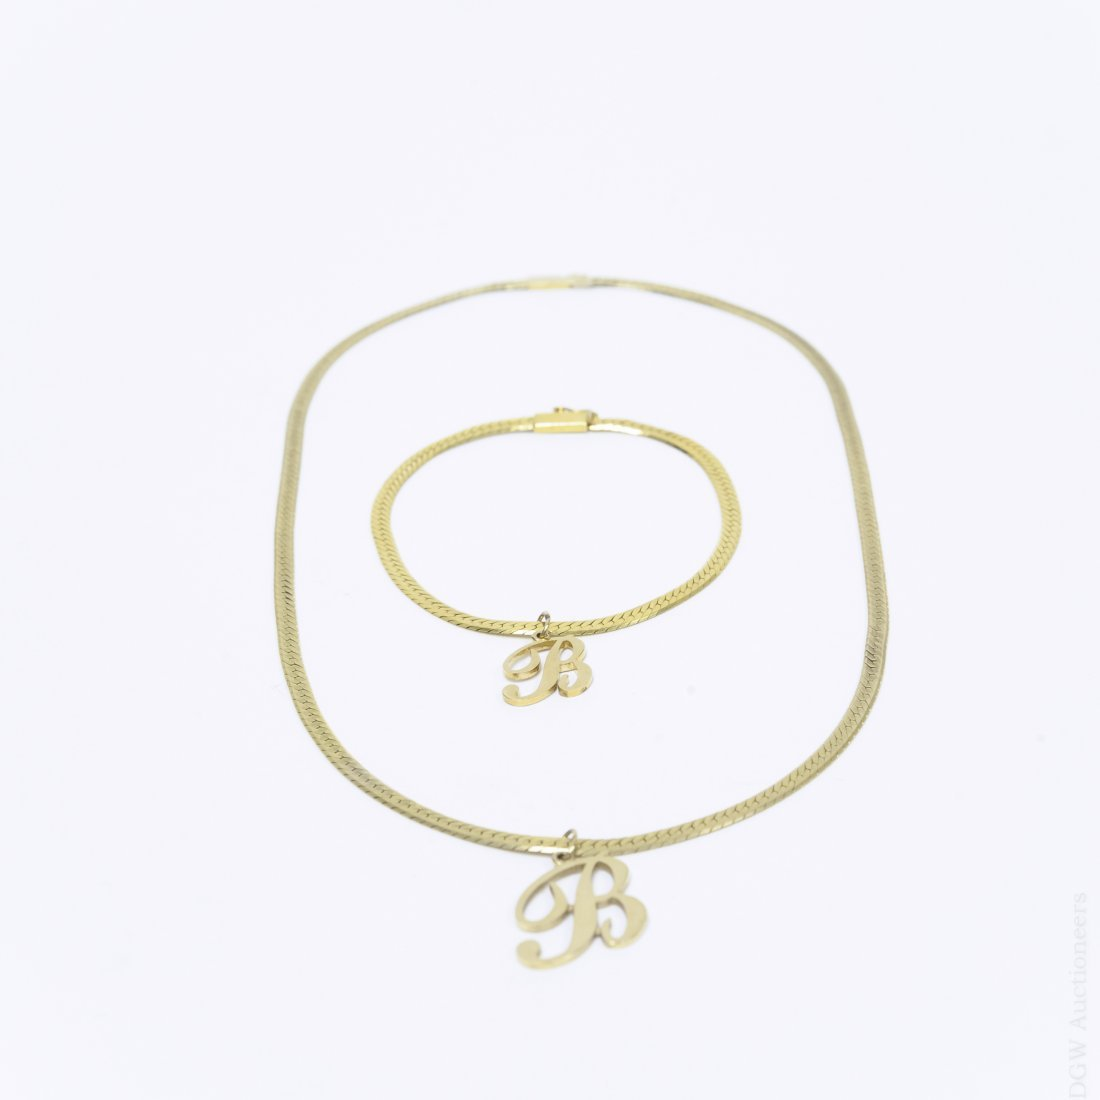 14Kt Yellow Gold Necklace and Bracelet.